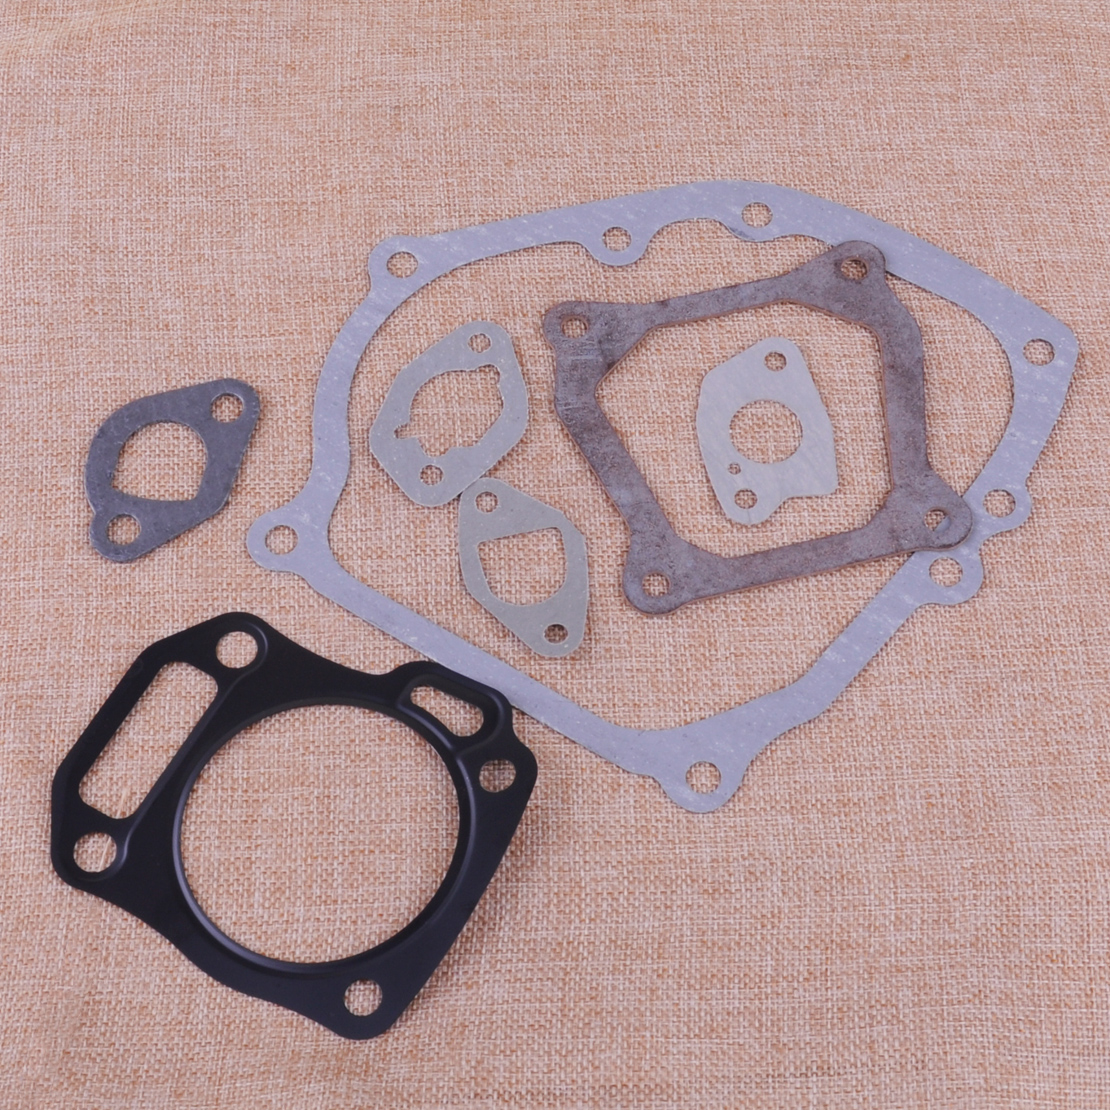 LETAOSK Gasoline Generator Gasket Kit Fits For Honda GX160 5.5HP GX200 6.5HP China 168F 168FA 168FB Gasoline Engine Generator